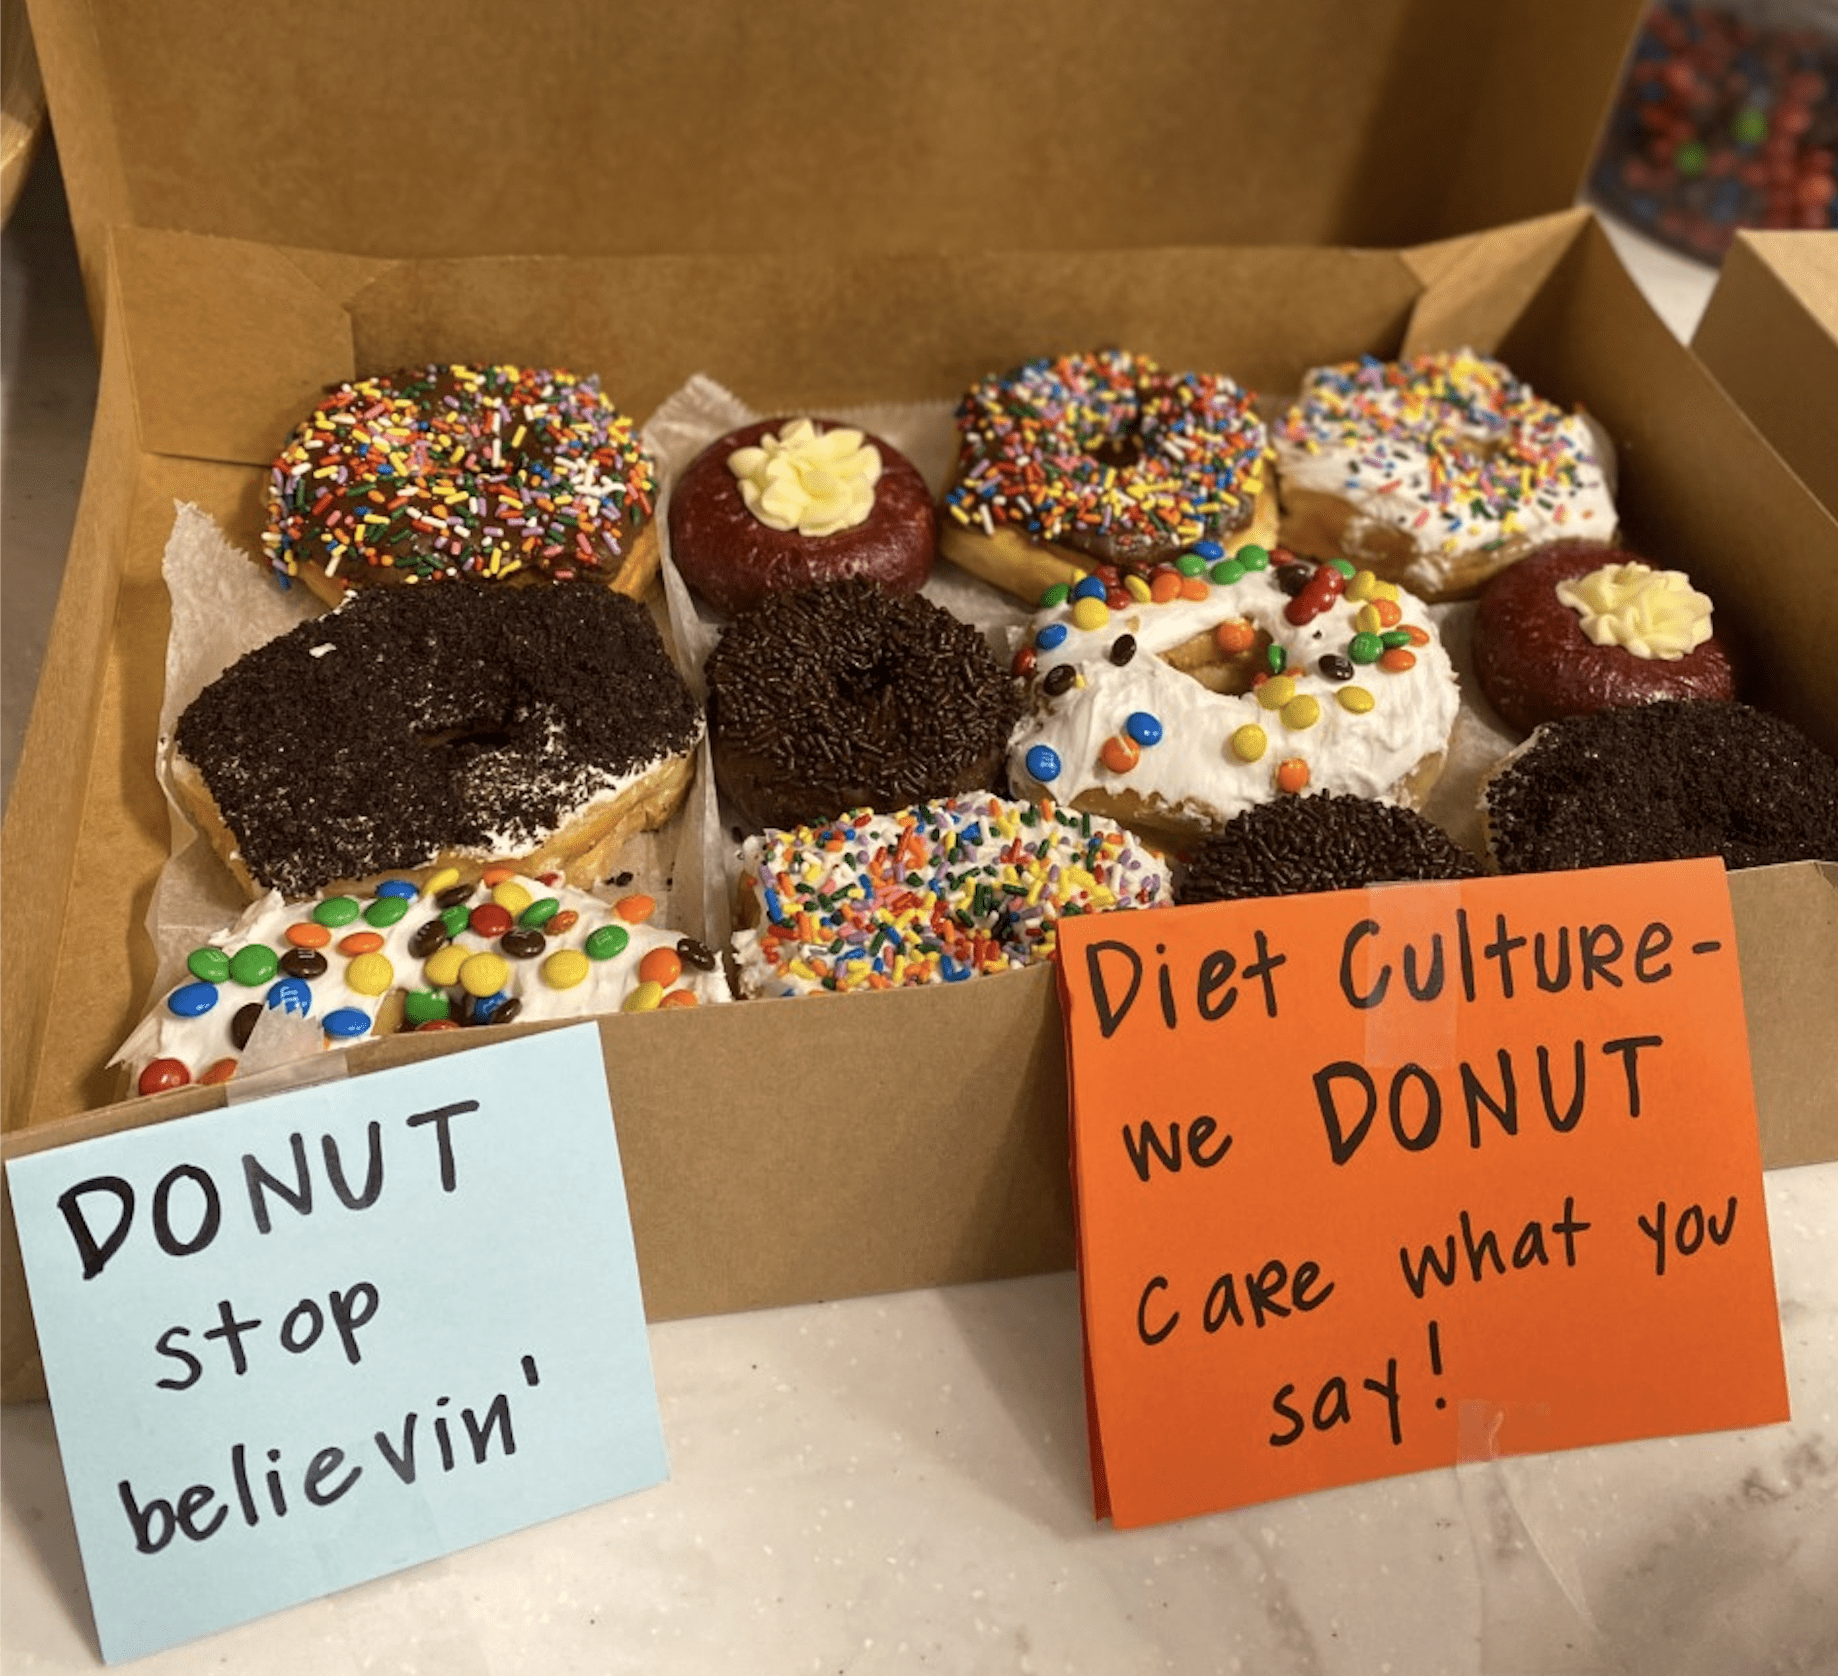 Donut Stop Believin' ...words to live by. #DietCultureSucks